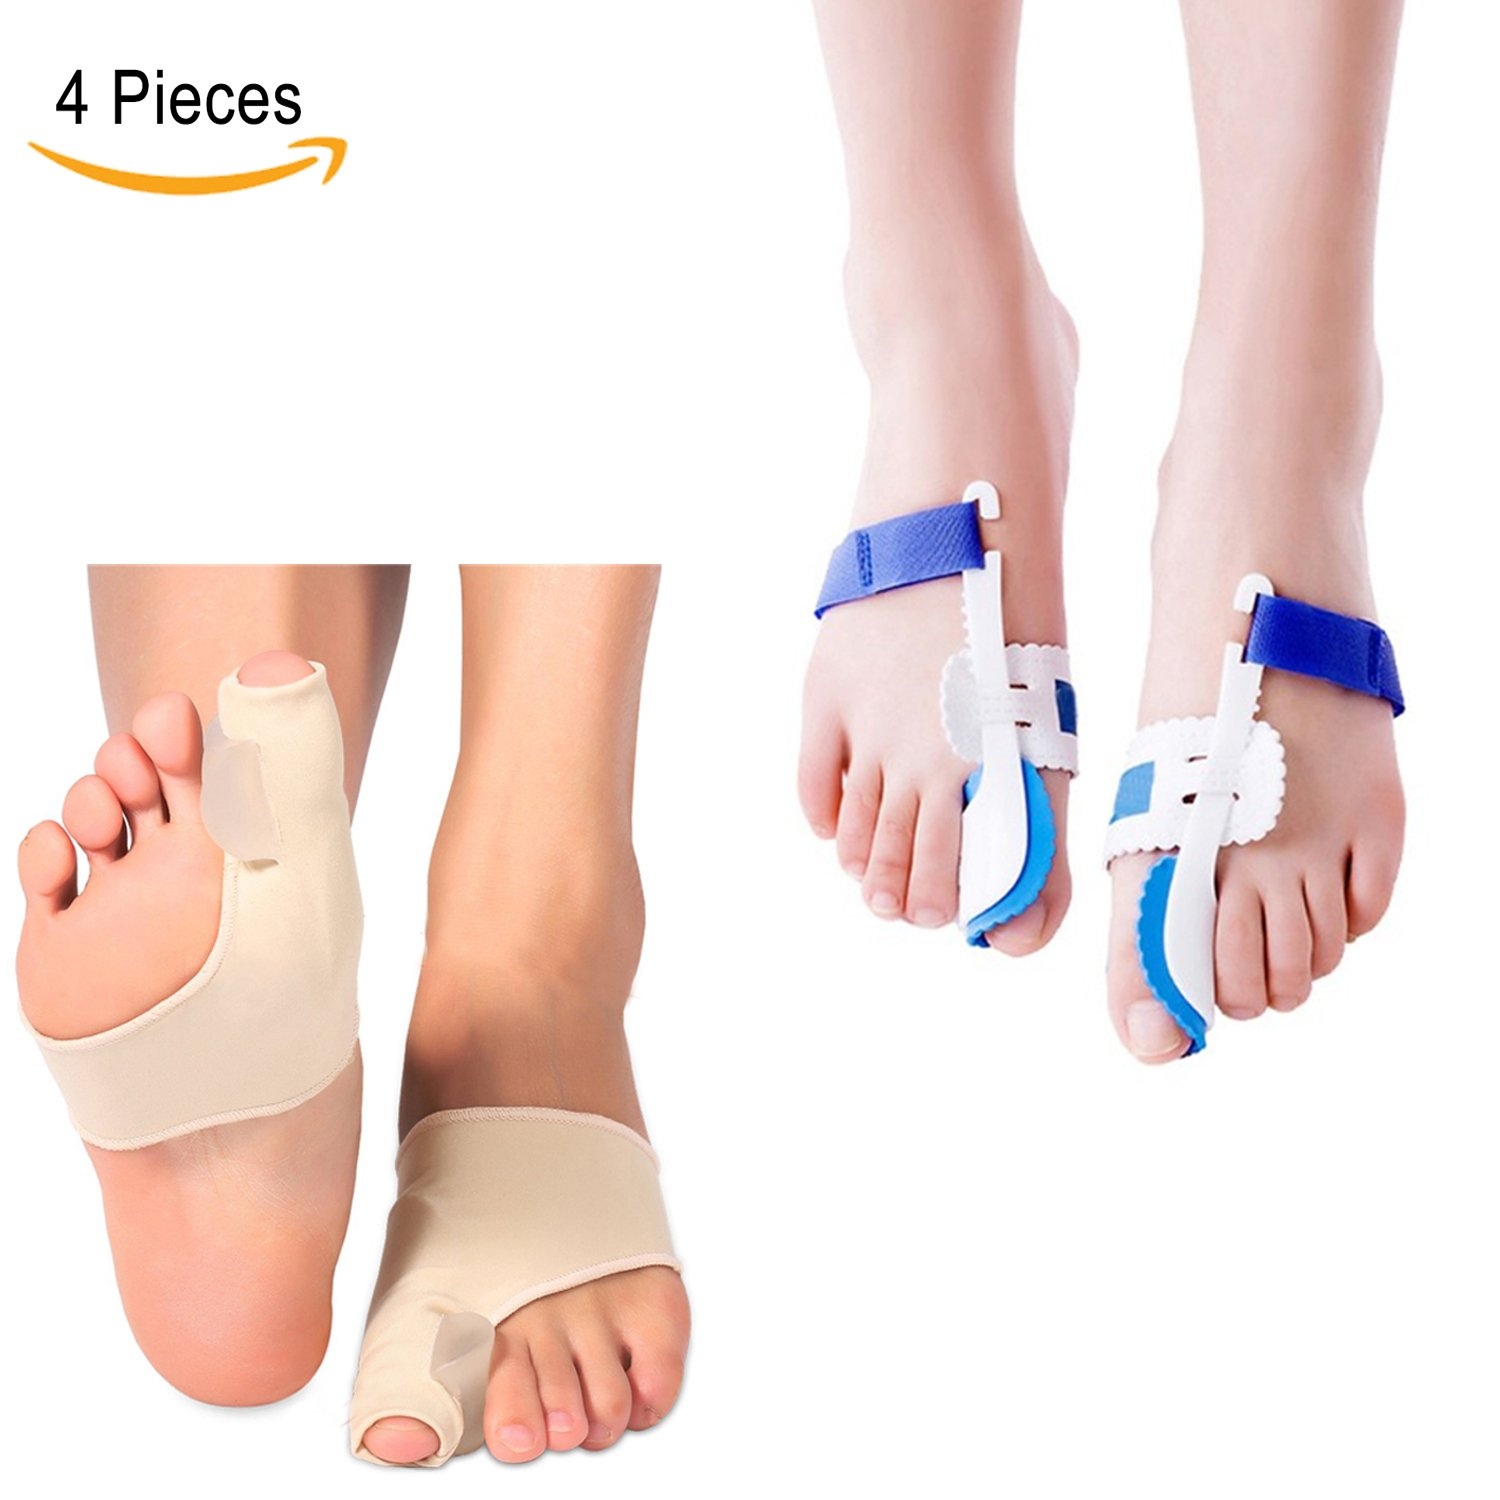 Bunion Corrector Toe Hallux Valgus Straighteners - Carikaien 4 PCS Splint Hammer Toe Splint Aid Surgery Treatment Guard for Men and Women One Size Fits Most Feet